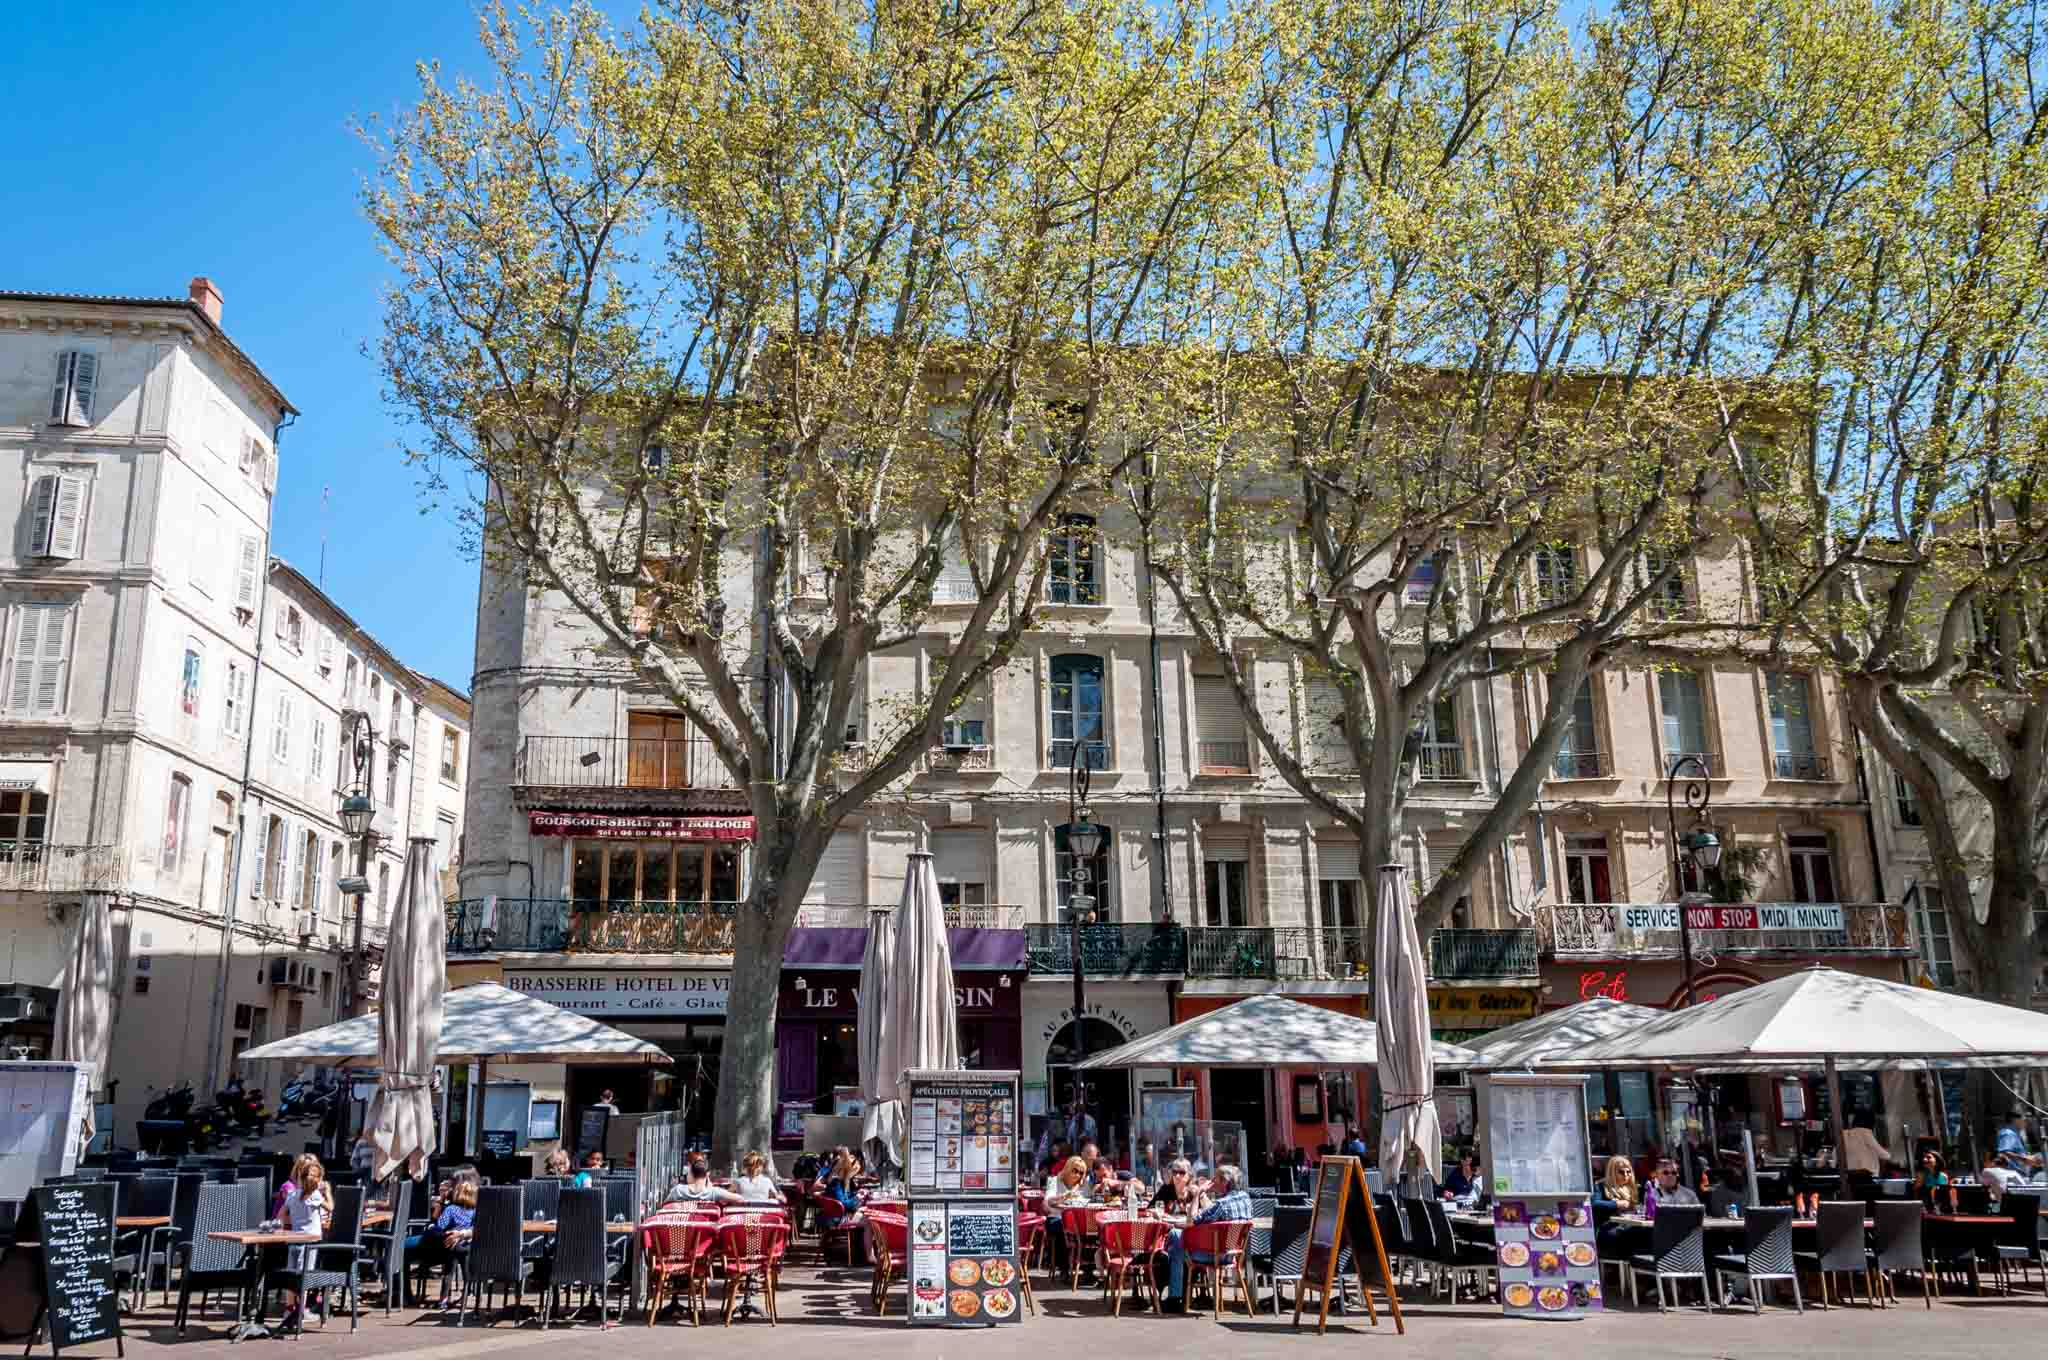 Outdoor cafes under the trees in Place de l'Horloge in Avignon France